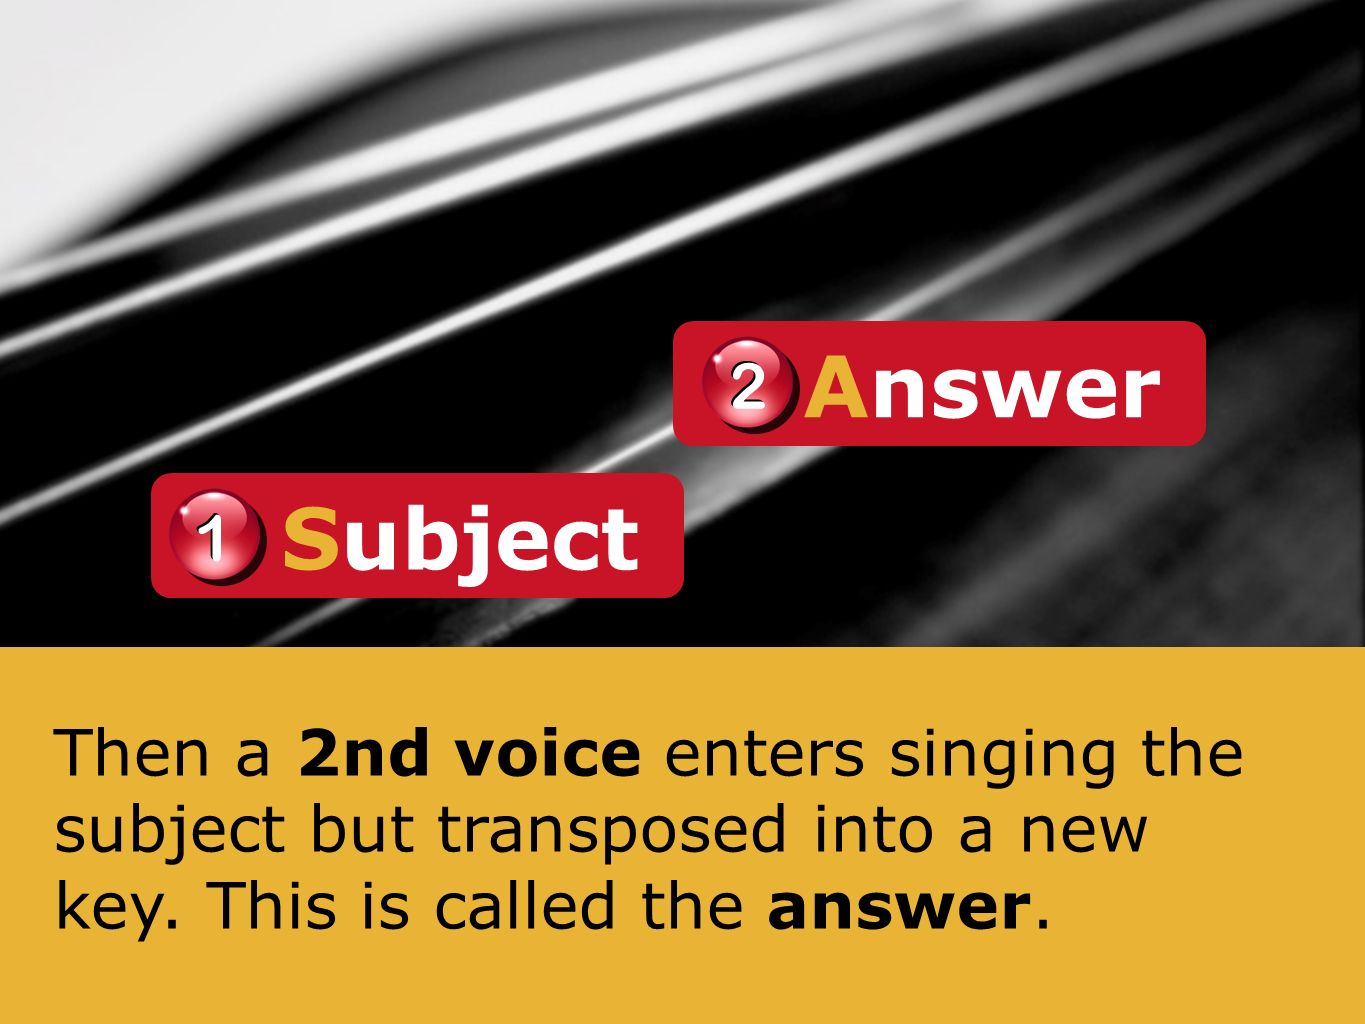 Then a 2nd voice enters singing the subject but transposed into a new key. This is called the answer. Answer 2 2 1 1 Subject